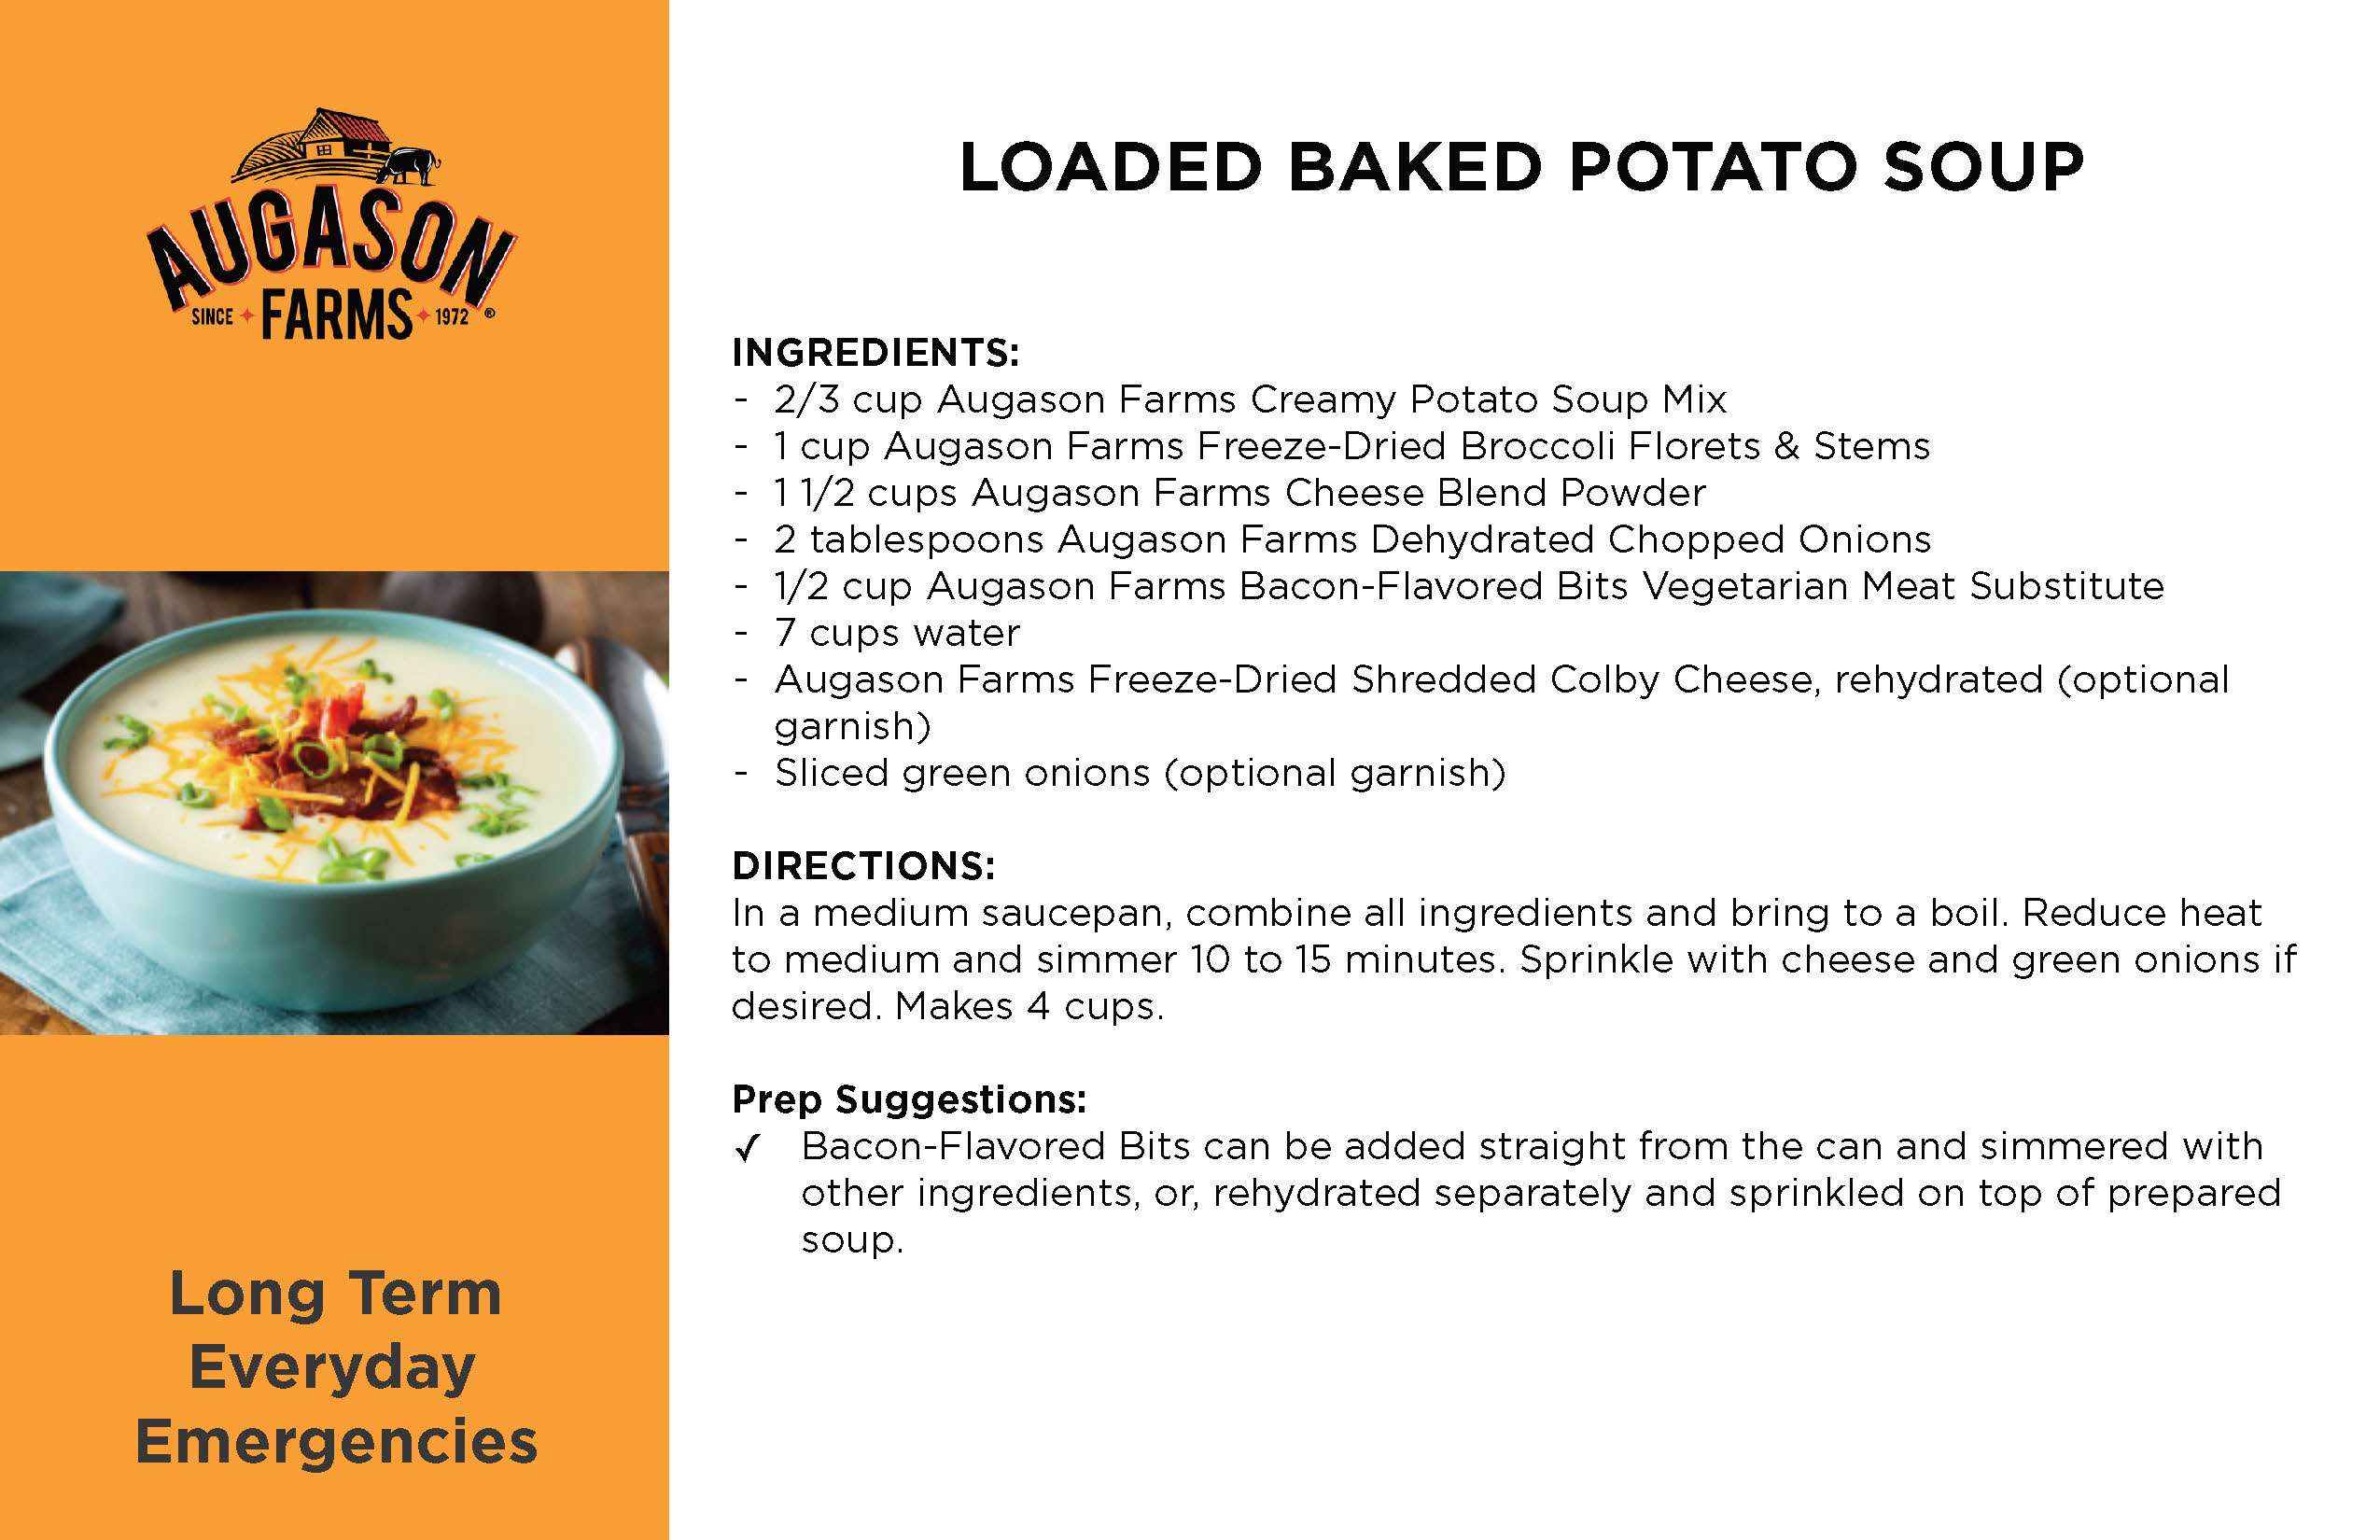 Loaded Baked Potato Soup Recipe Card